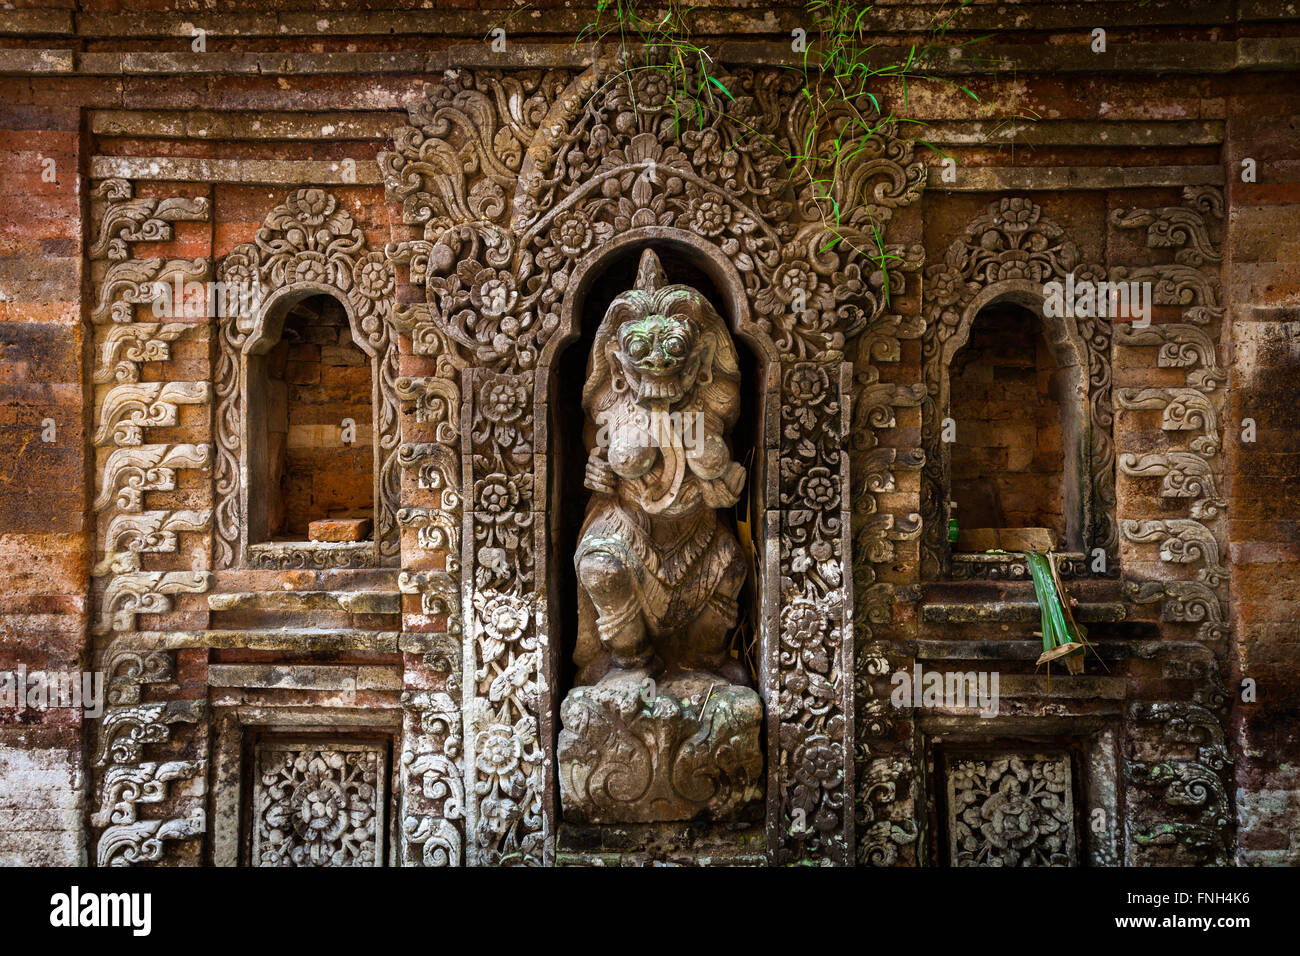 Rangda the demon queen statue in Ubud Palace, Bali, Indonesia. - Stock Image